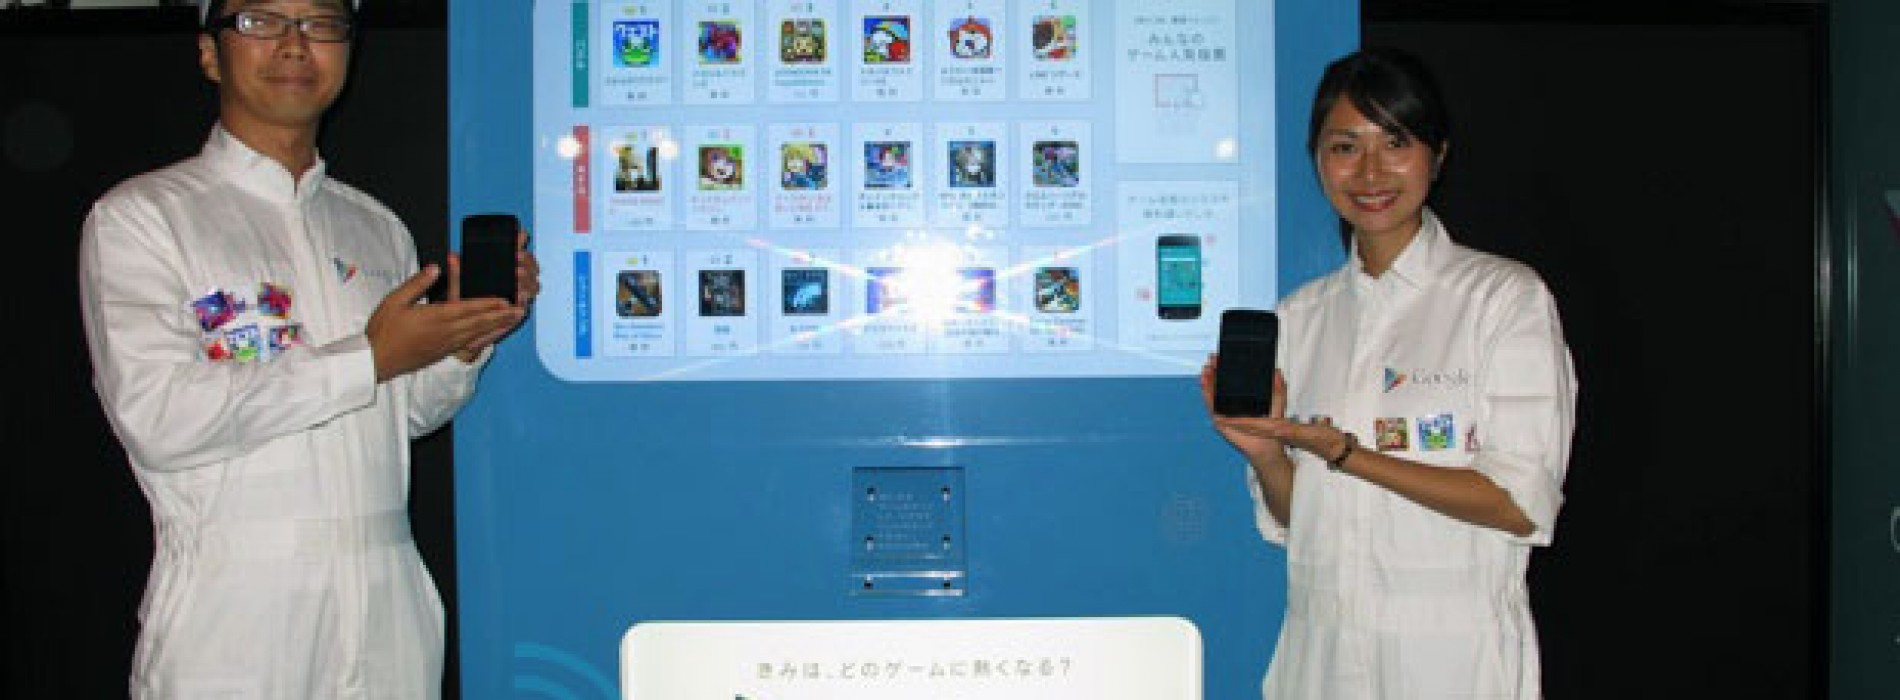 Google Japan launches Android vending machines in Tokyo